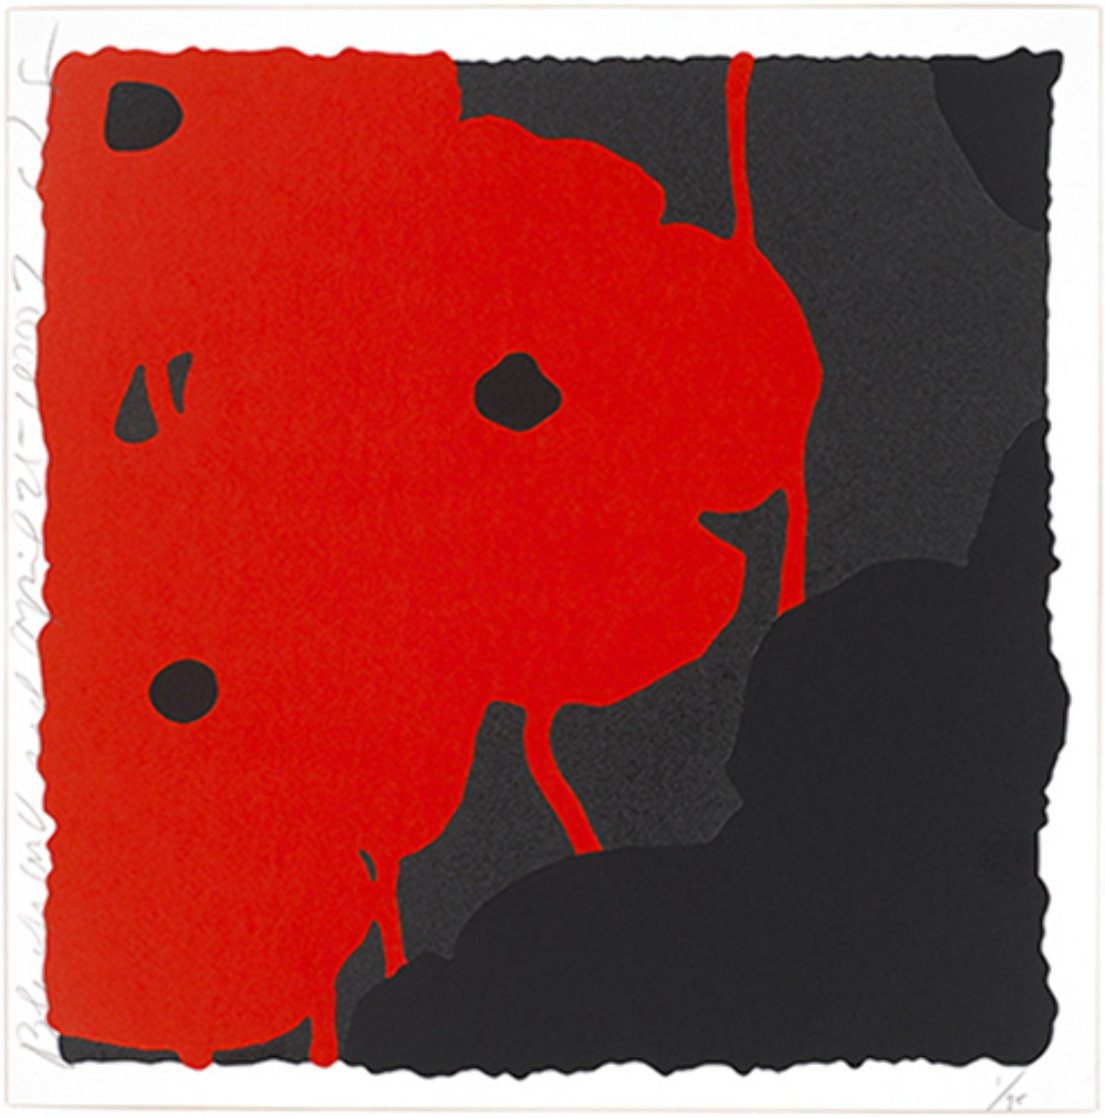 Black and Red, April 25, 2007 Limited Edition Print by Donald Sultan